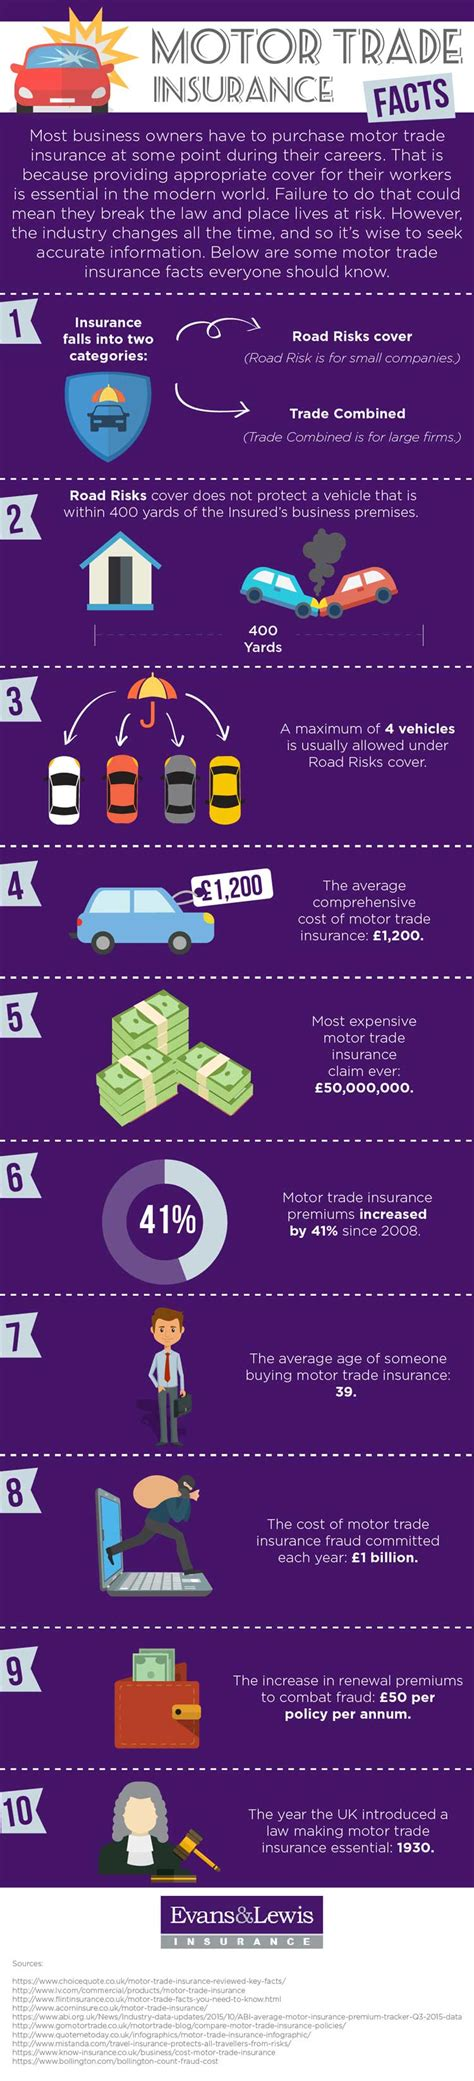 Motor Trade Insurance Cheap by Motor Trade Insurance Facts Motor Trade Infographic